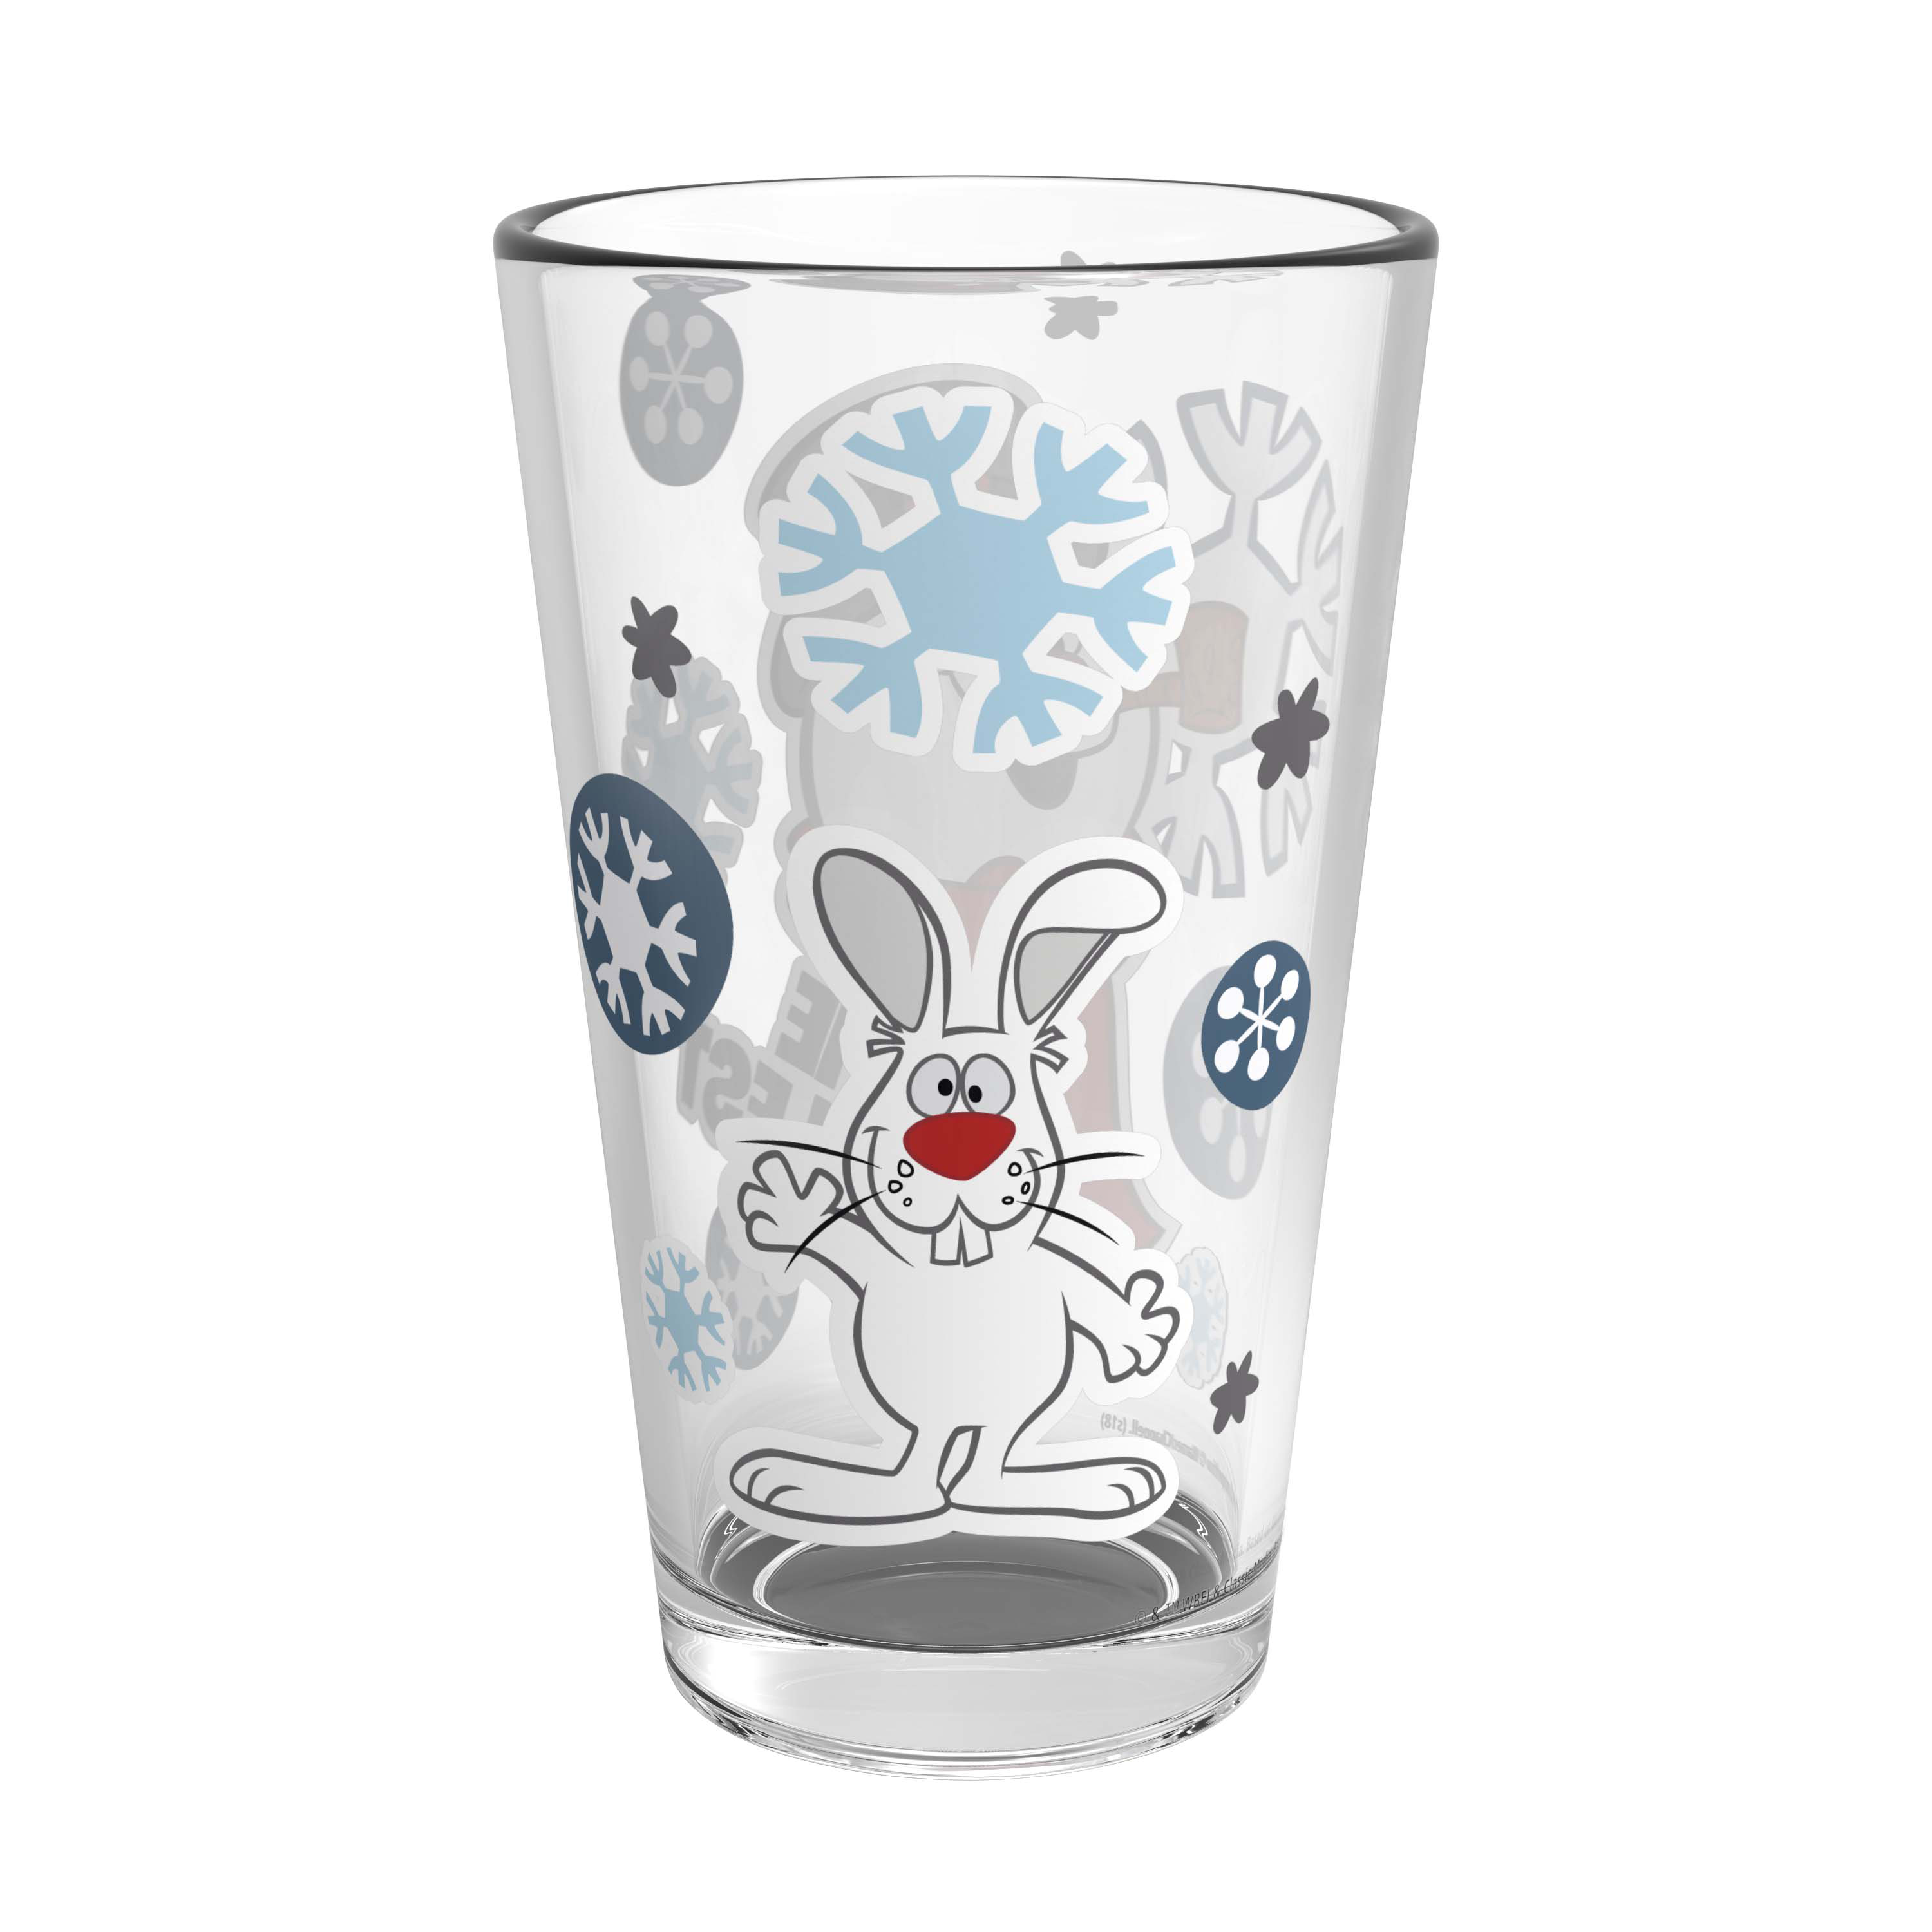 Christmas Collectibles 16 ounce Pint Glasses, Frosty the Snowman, 2-piece set slideshow image 6